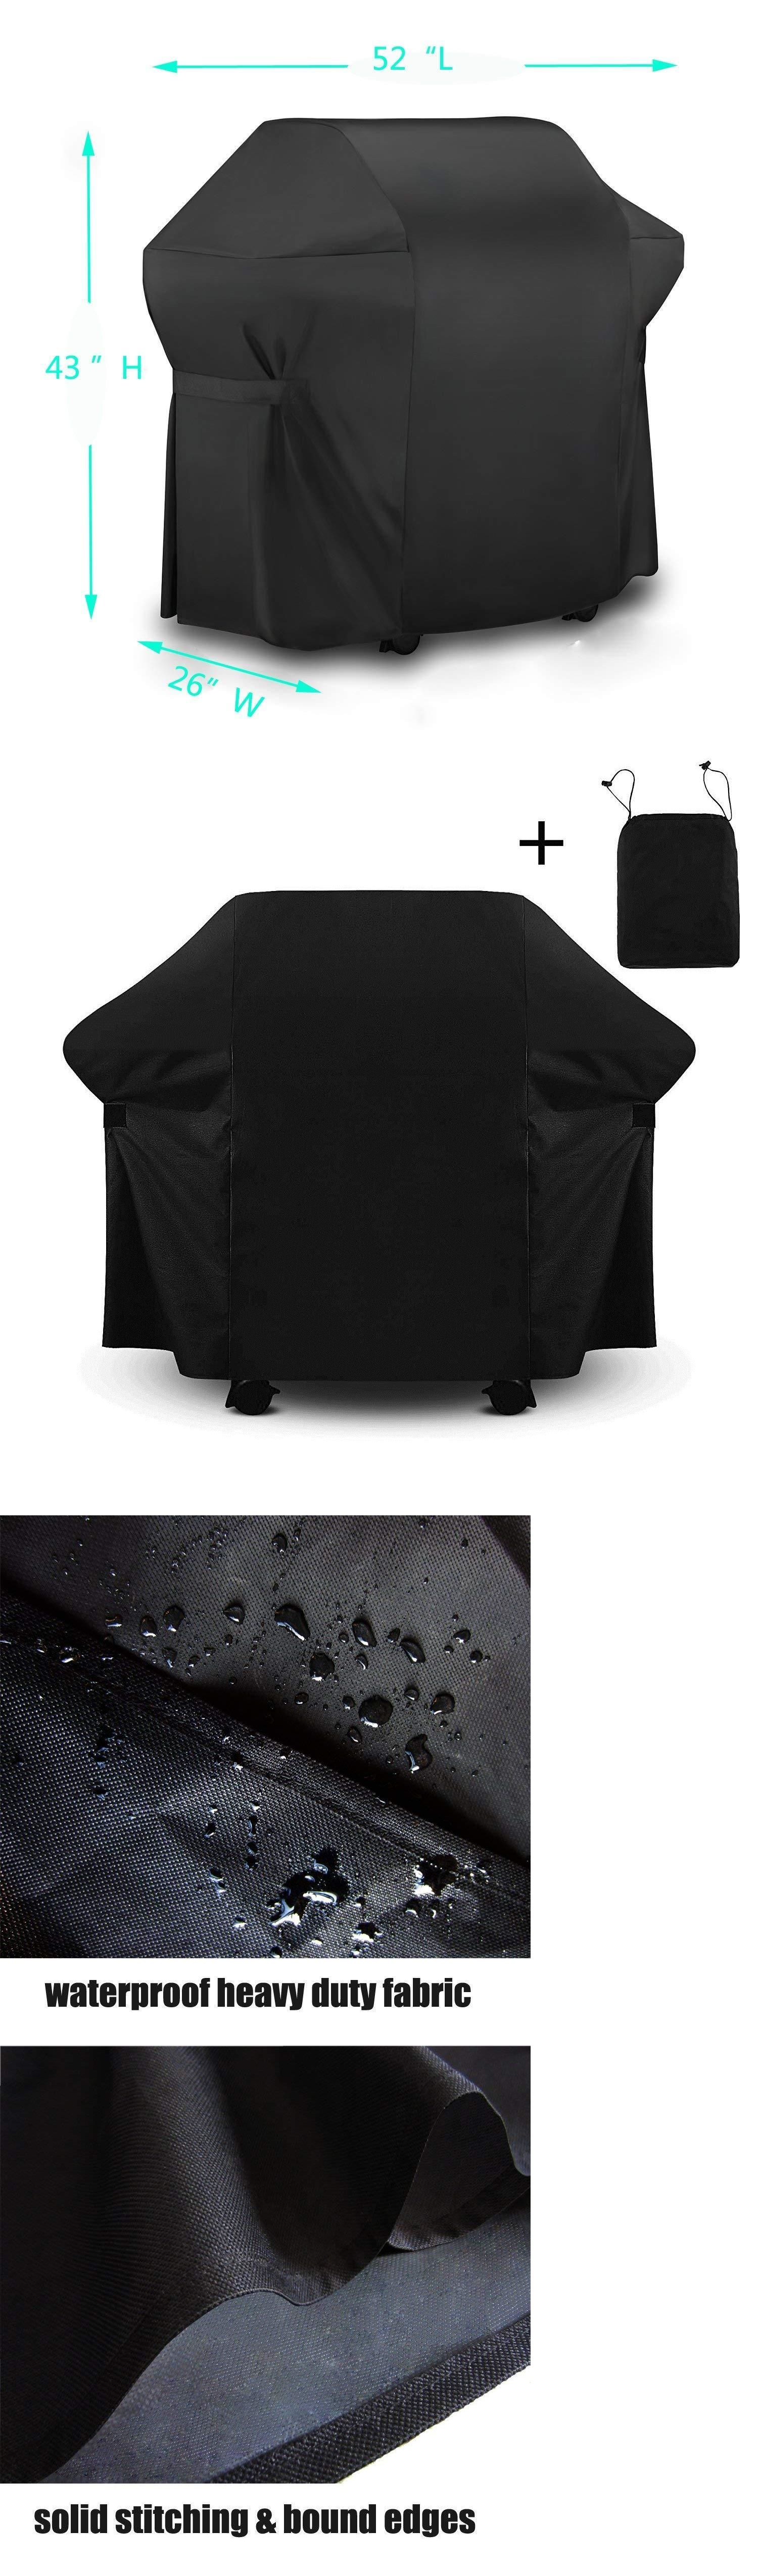 Barbecue And Grill Covers 79686 52 Waterproof 7106 Barbecue Gas Grill Cover For Weber Spirit 200 And 300 Series Buy It Gas Grill Covers Gas Bbq Grill Cover